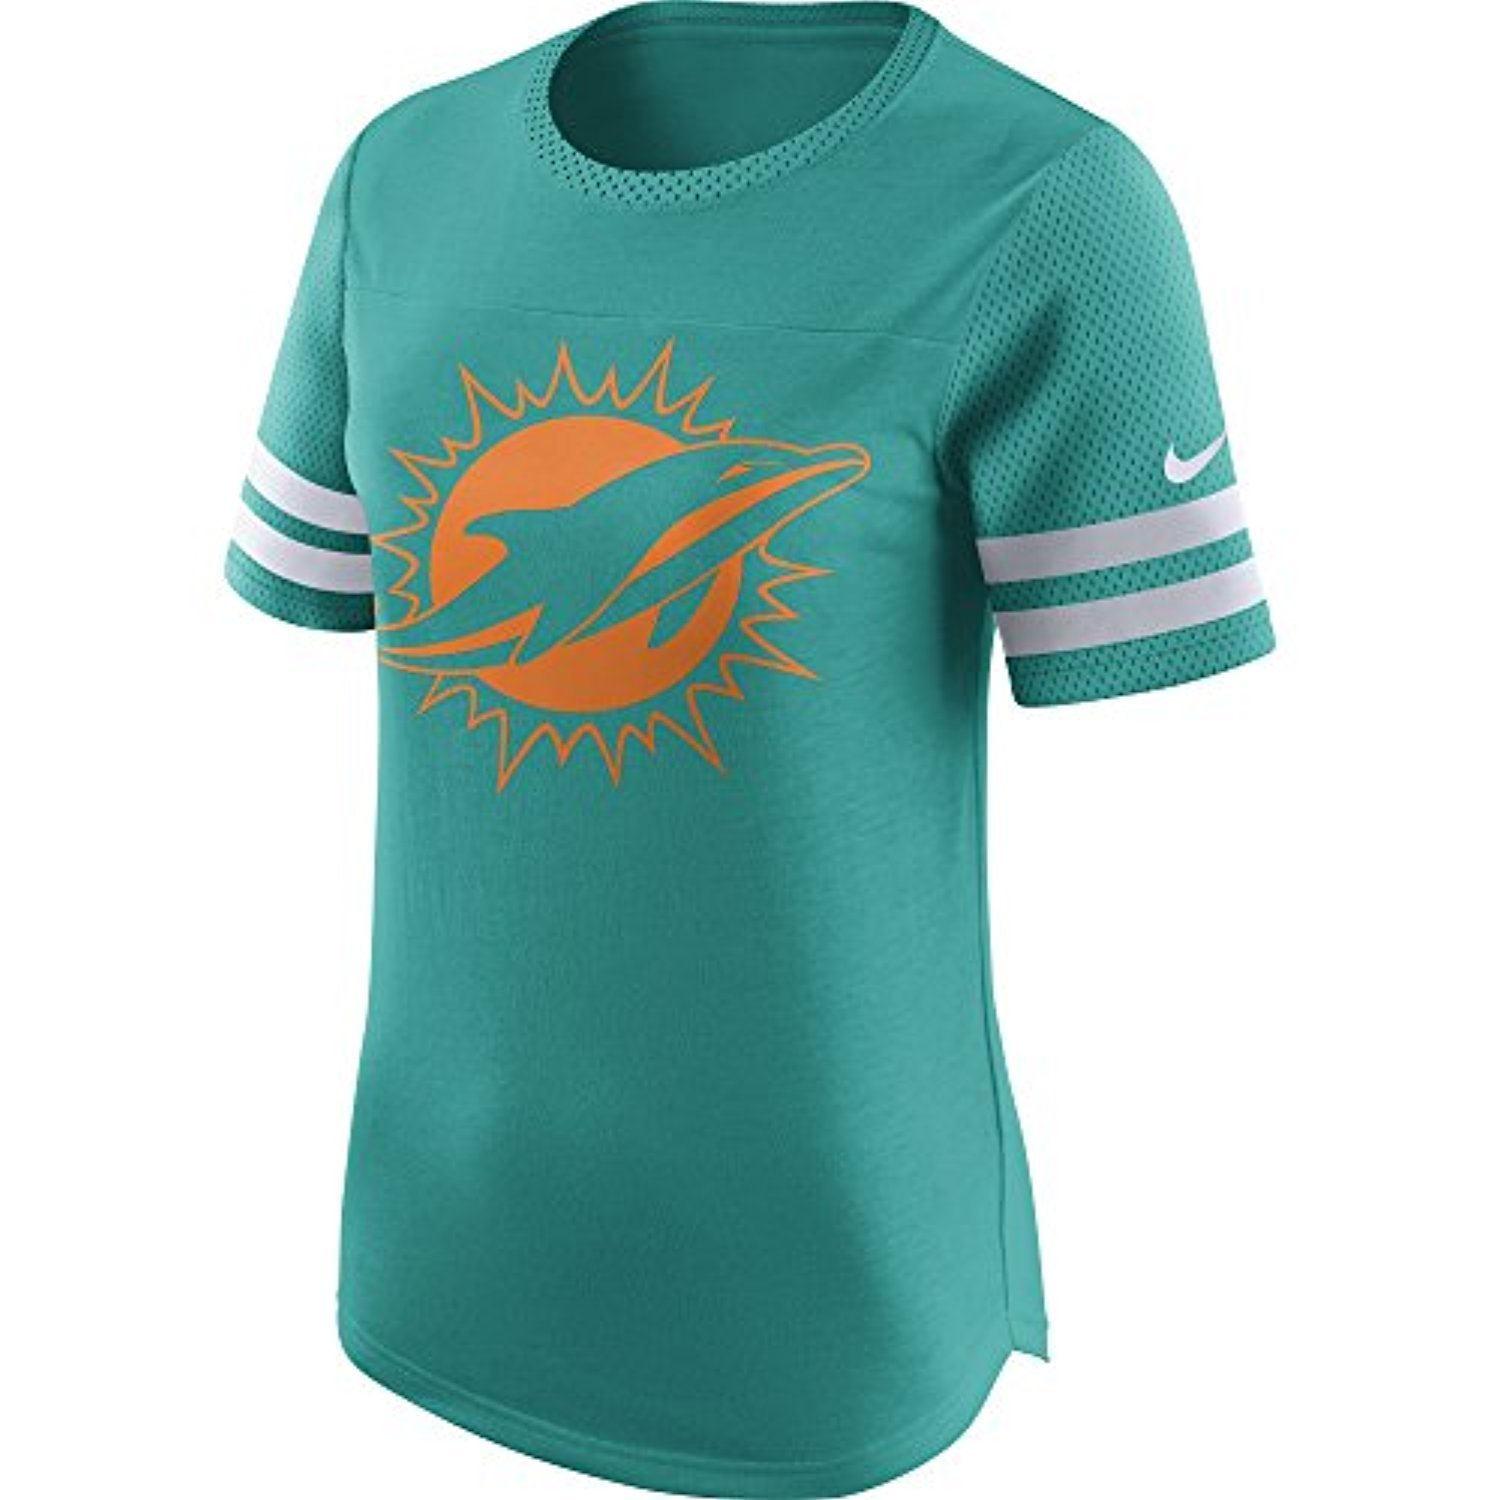 Nike Women s Miami Dolphins Gear Up Modern Fan Top Turbo Green White Size  X-Large at Amazon Women s Clothing store  50feec6c9